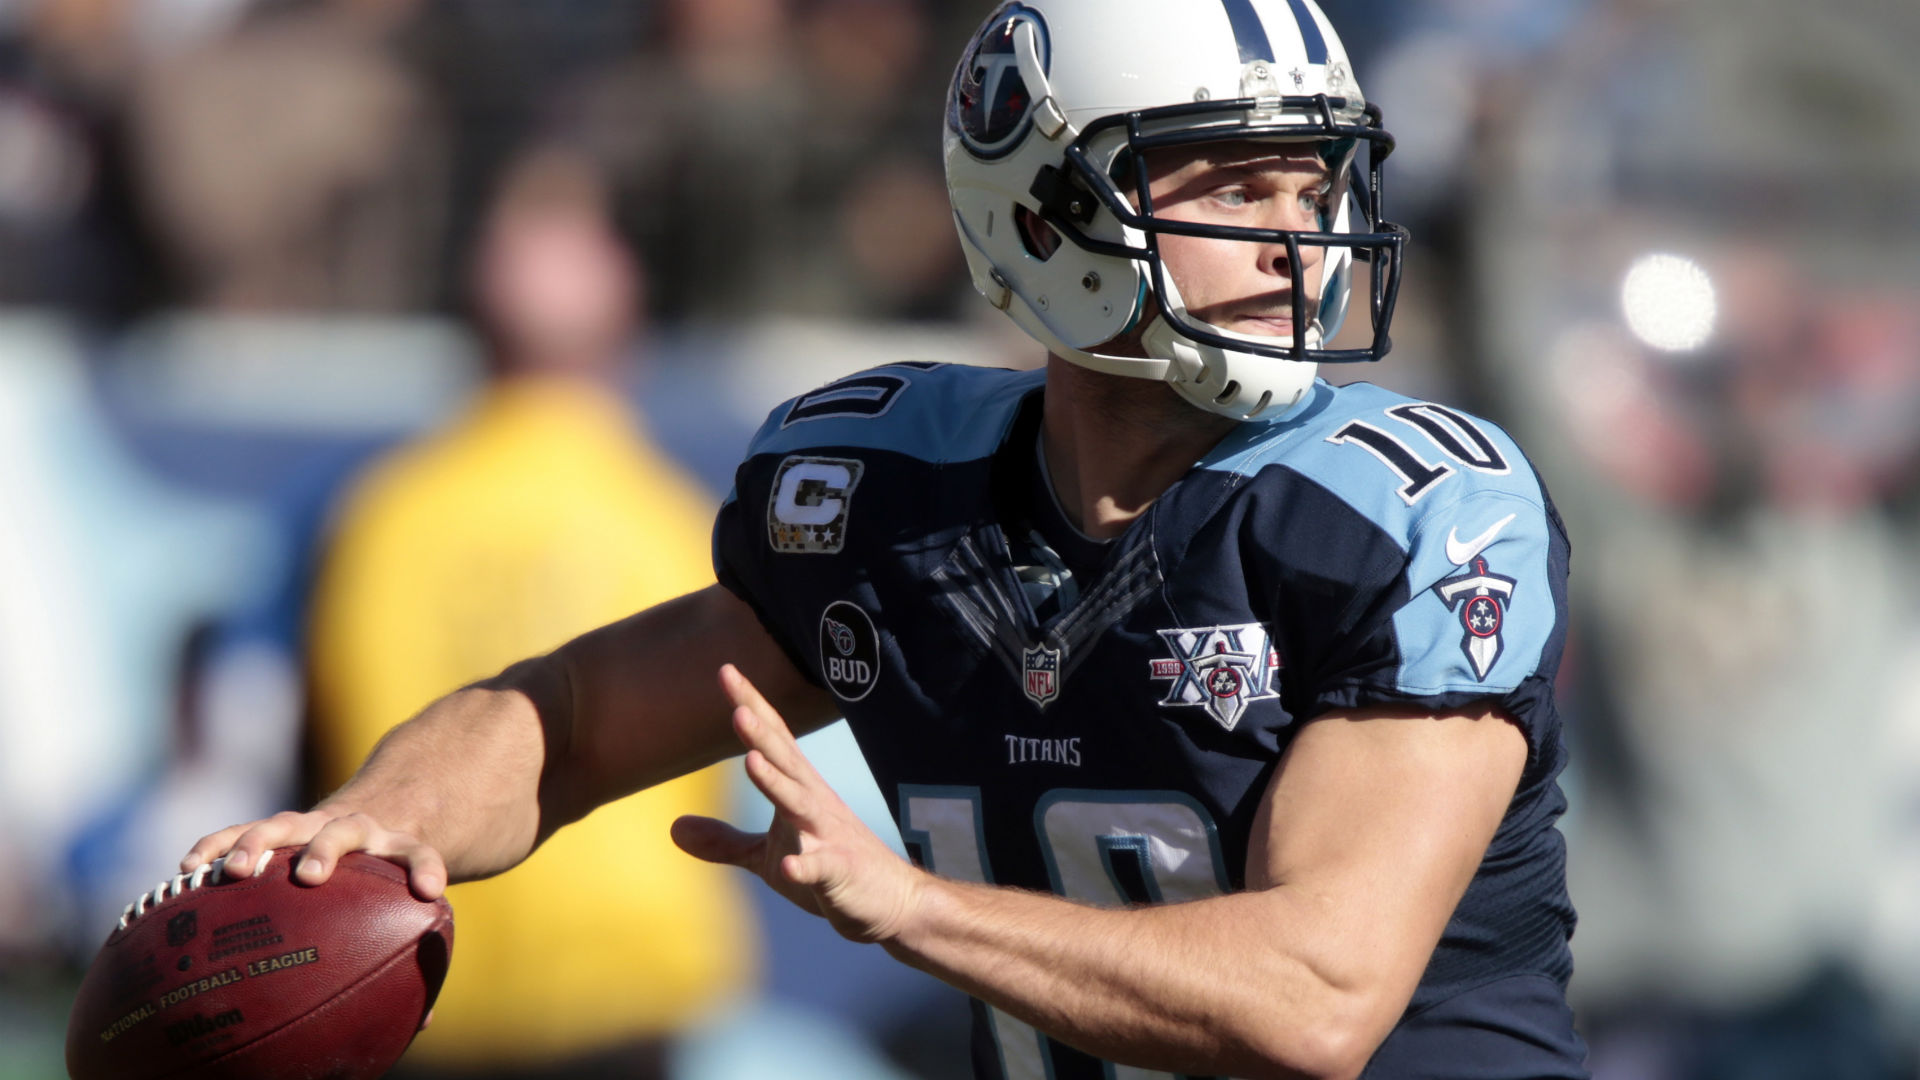 Jake_Locker_AP_0407_FTR